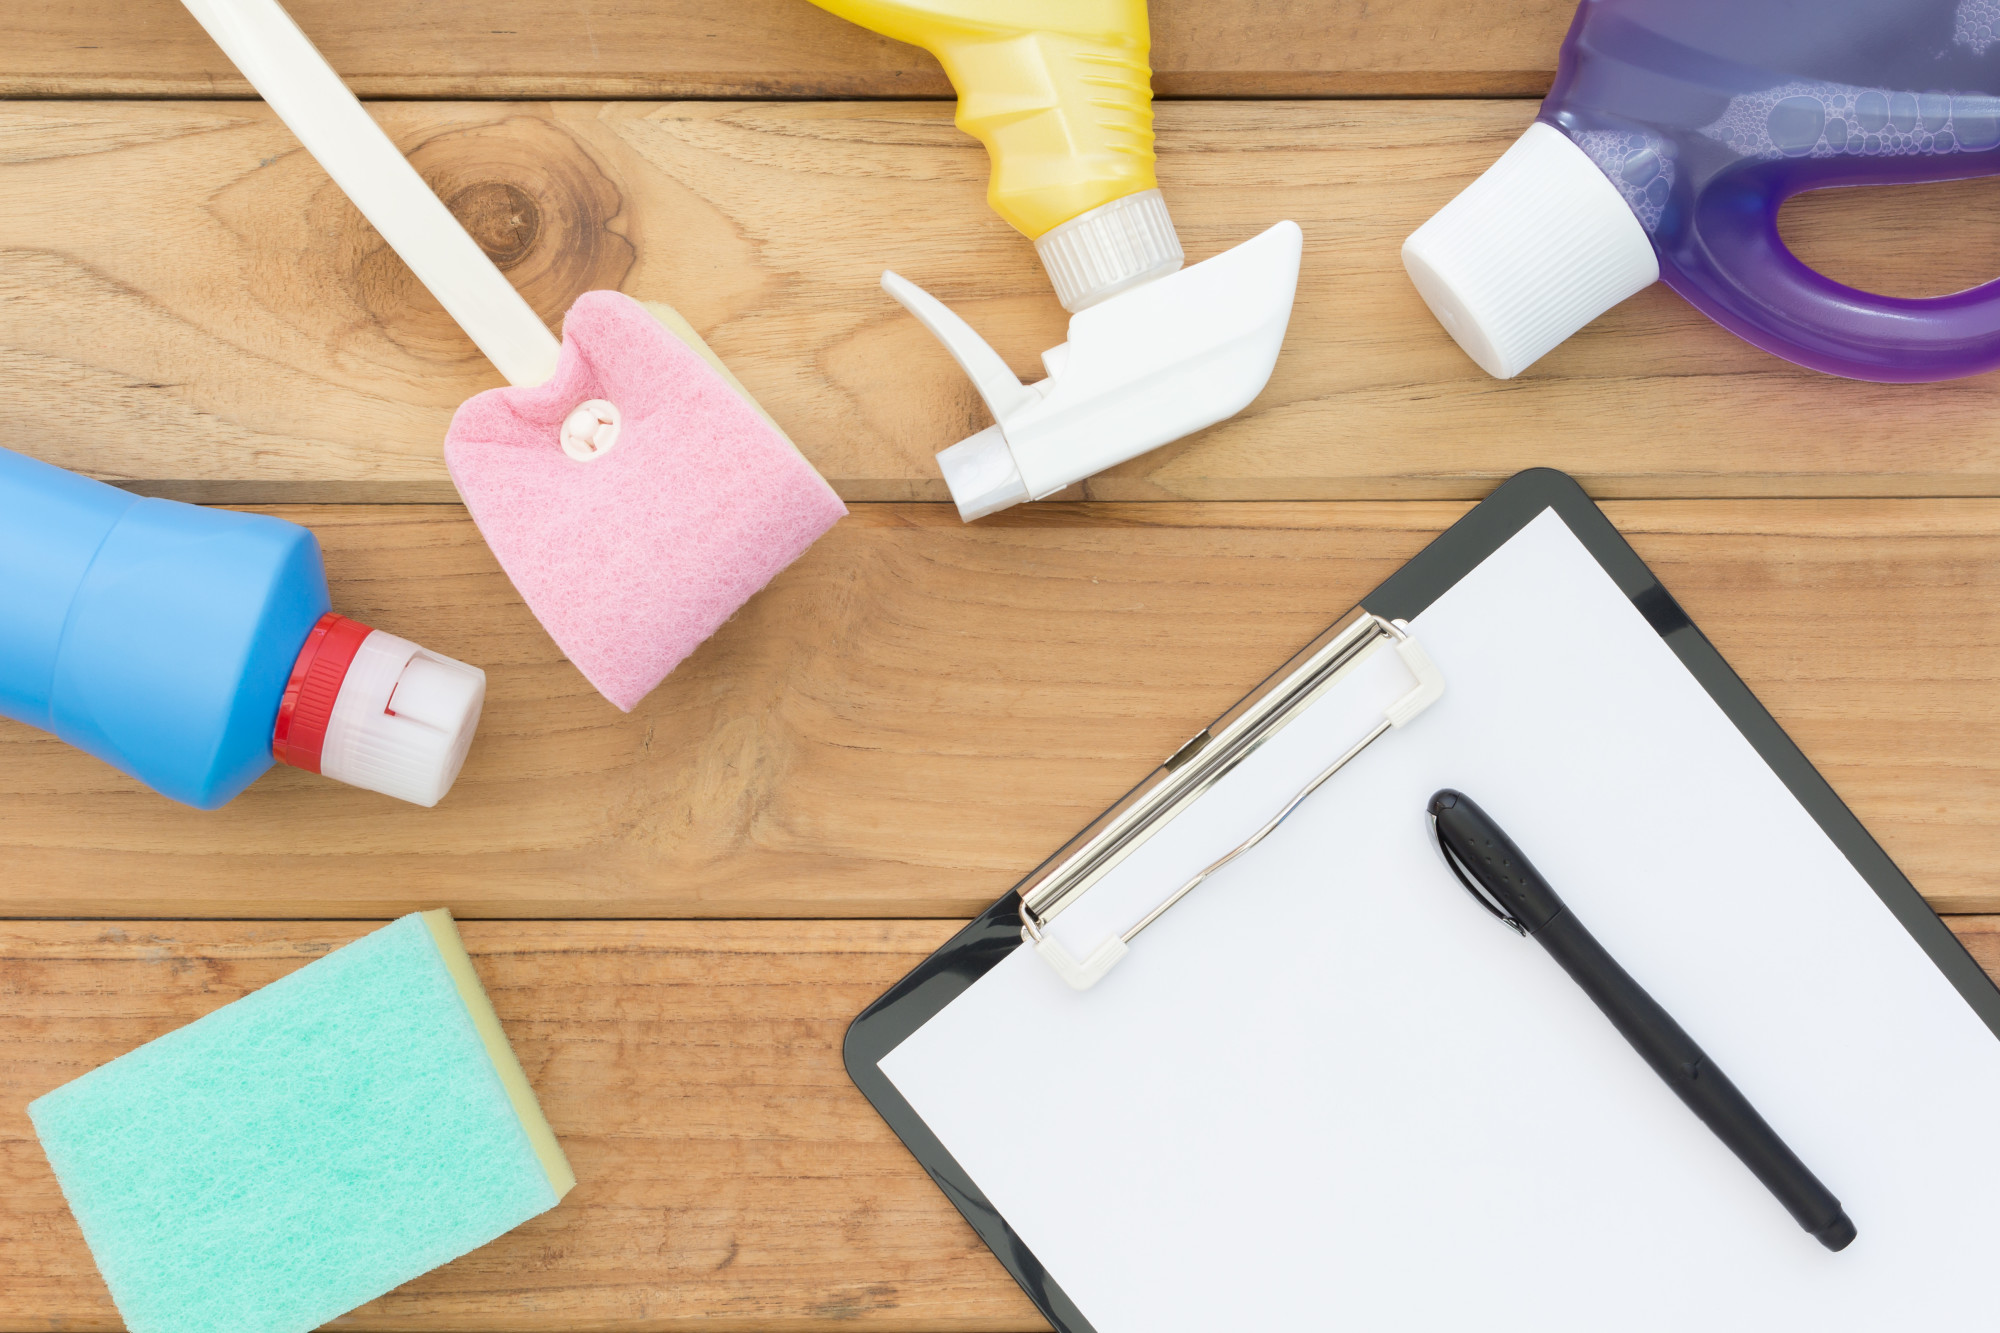 5 Spring Cleaning Tips That Every Homeowner Needs to Know